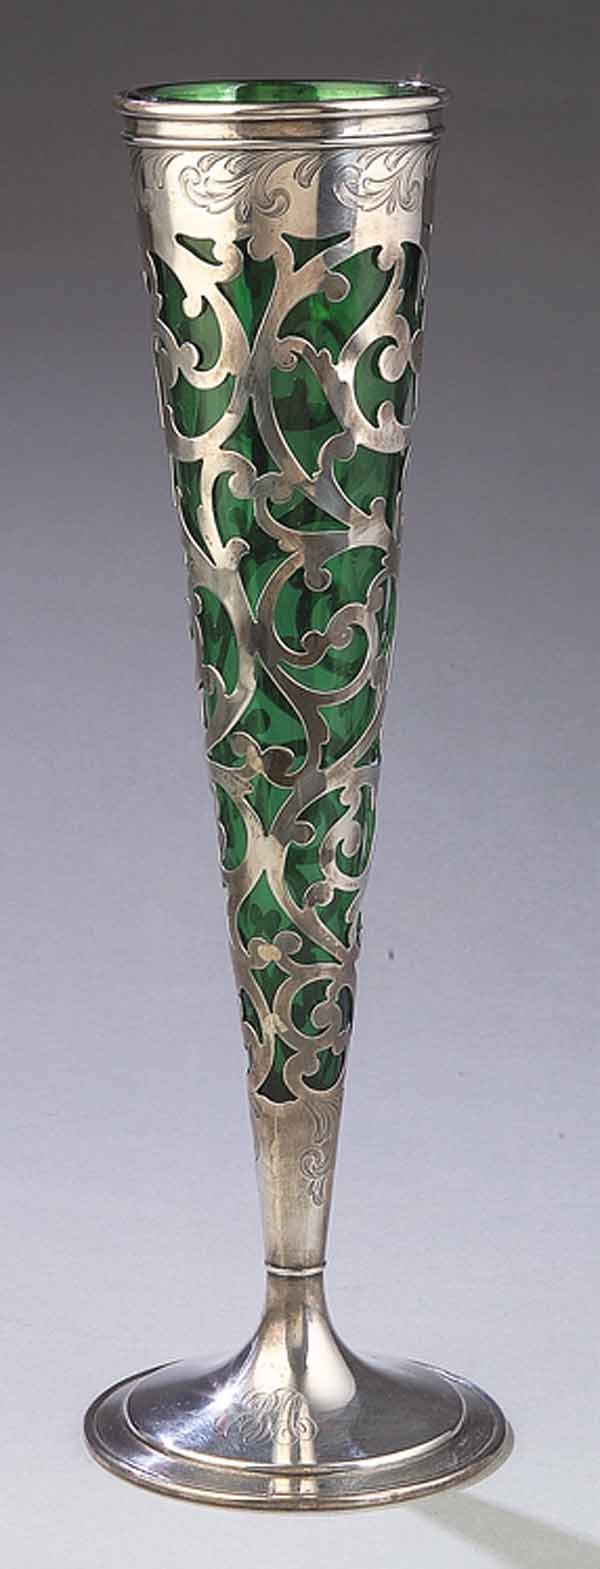 660: Art Nouveau Sterling Silver, Glass Tall Vase